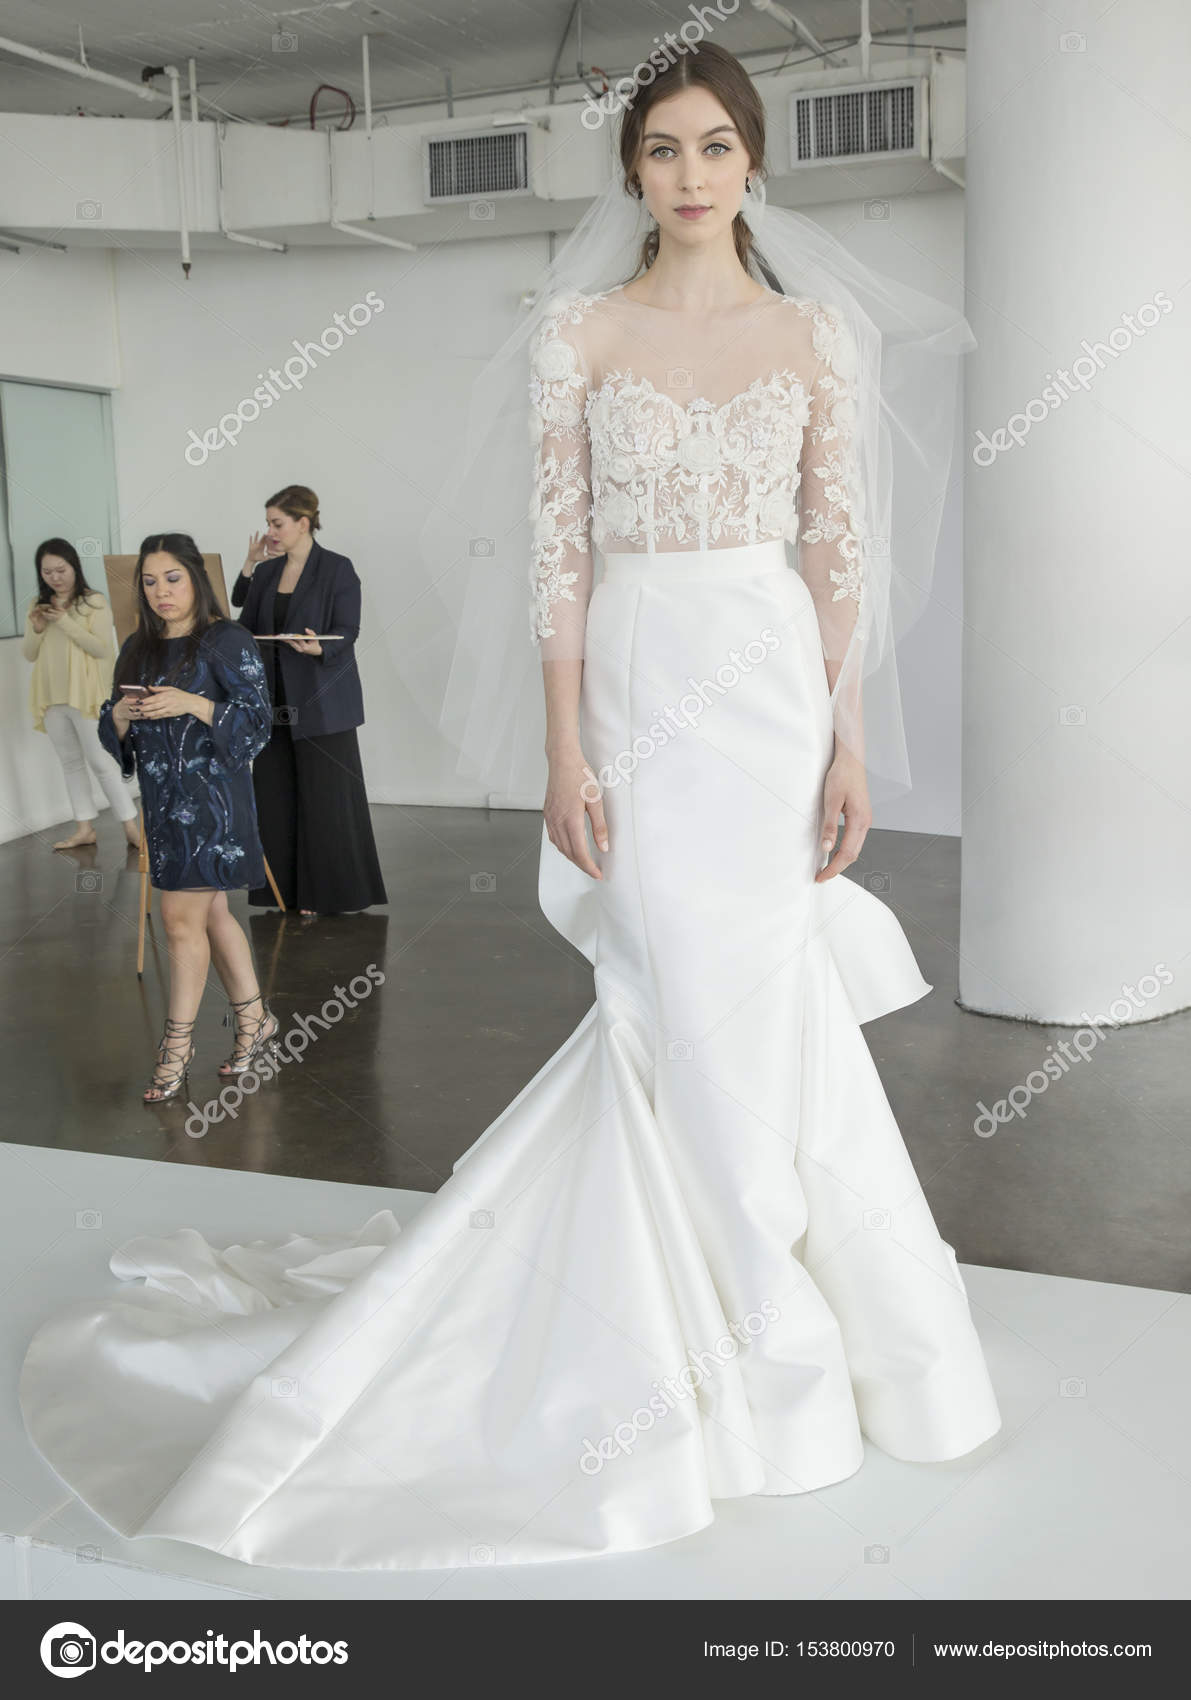 5c3e2a47 NEW YORK, NY - April 20, 2017: A model poses during presentation for the Marchesa  Bridal Spring 2018 Collection Runway Show during NY Fashion Week Bridal ...